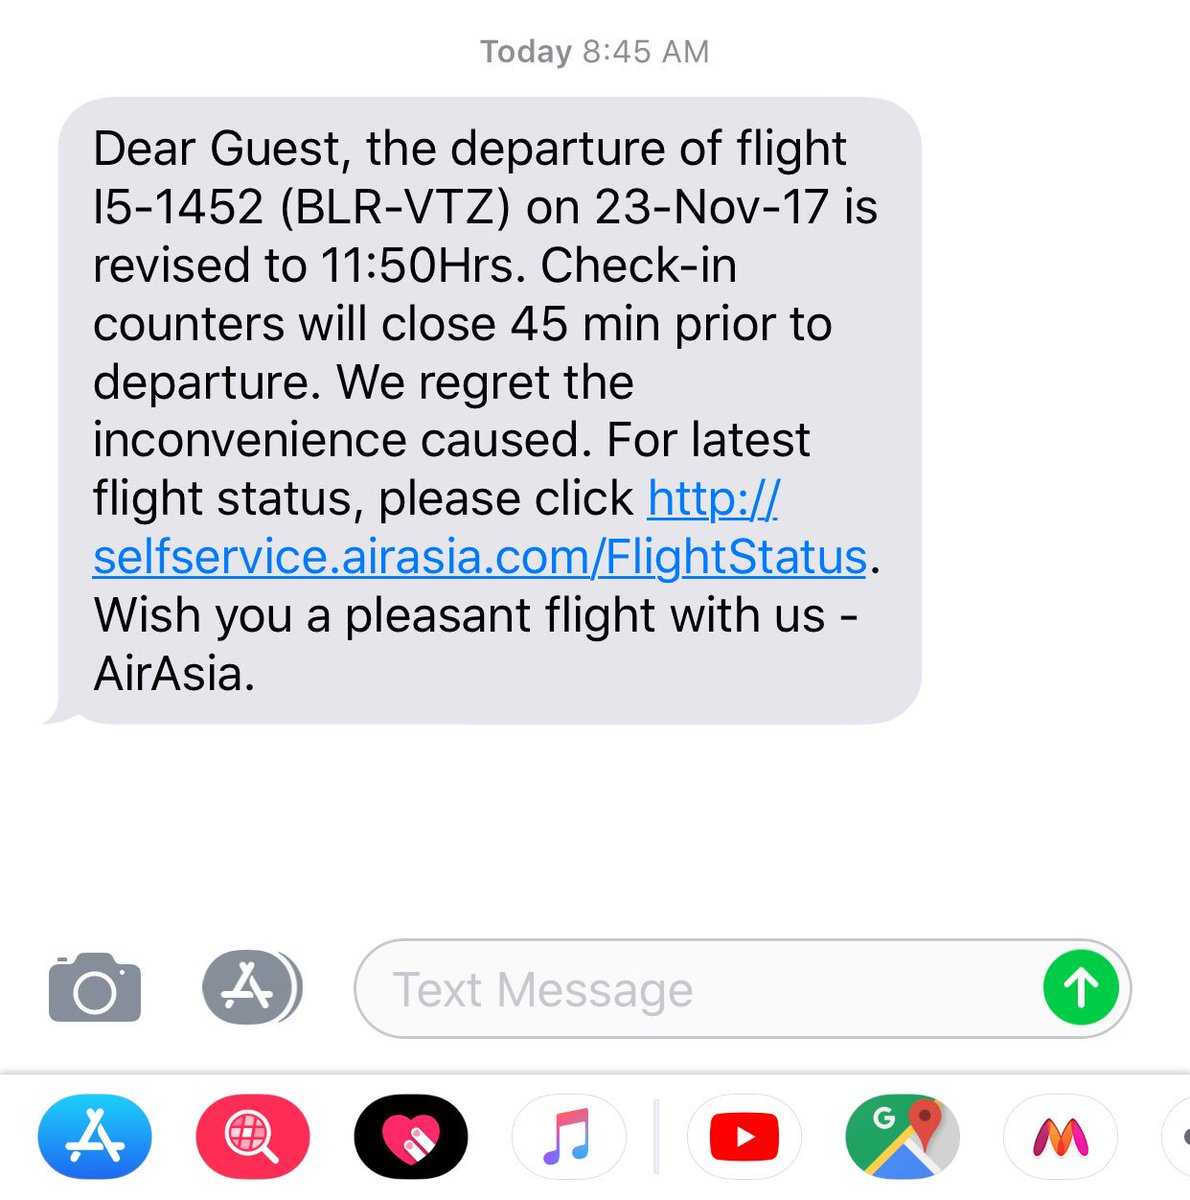 @AirAsia @AirAsiaSupport 9:05 am flight #delayed by 3 hours #informed 15 min prior #departure #badcustomerservice #lastflightwithairasia #gotohell #connecting #train #missed #neverflywithairasia <br>http://pic.twitter.com/KsZJeagA7q